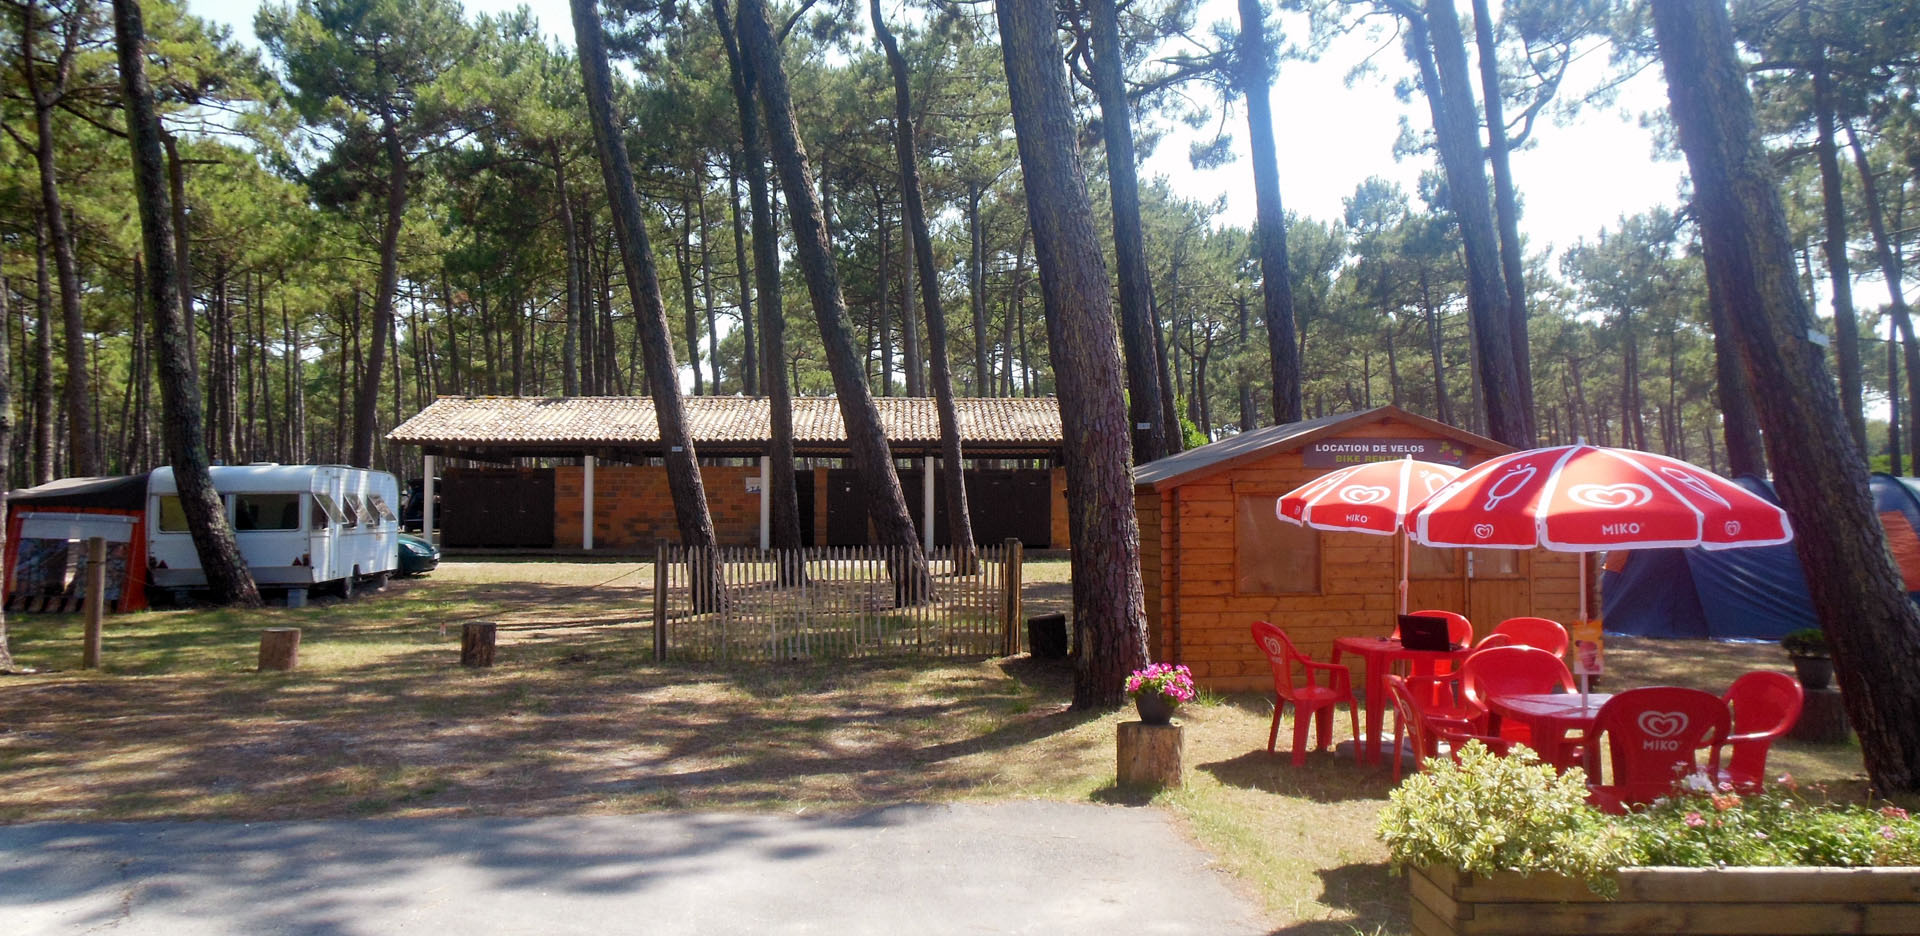 Camping traditionnel et familial